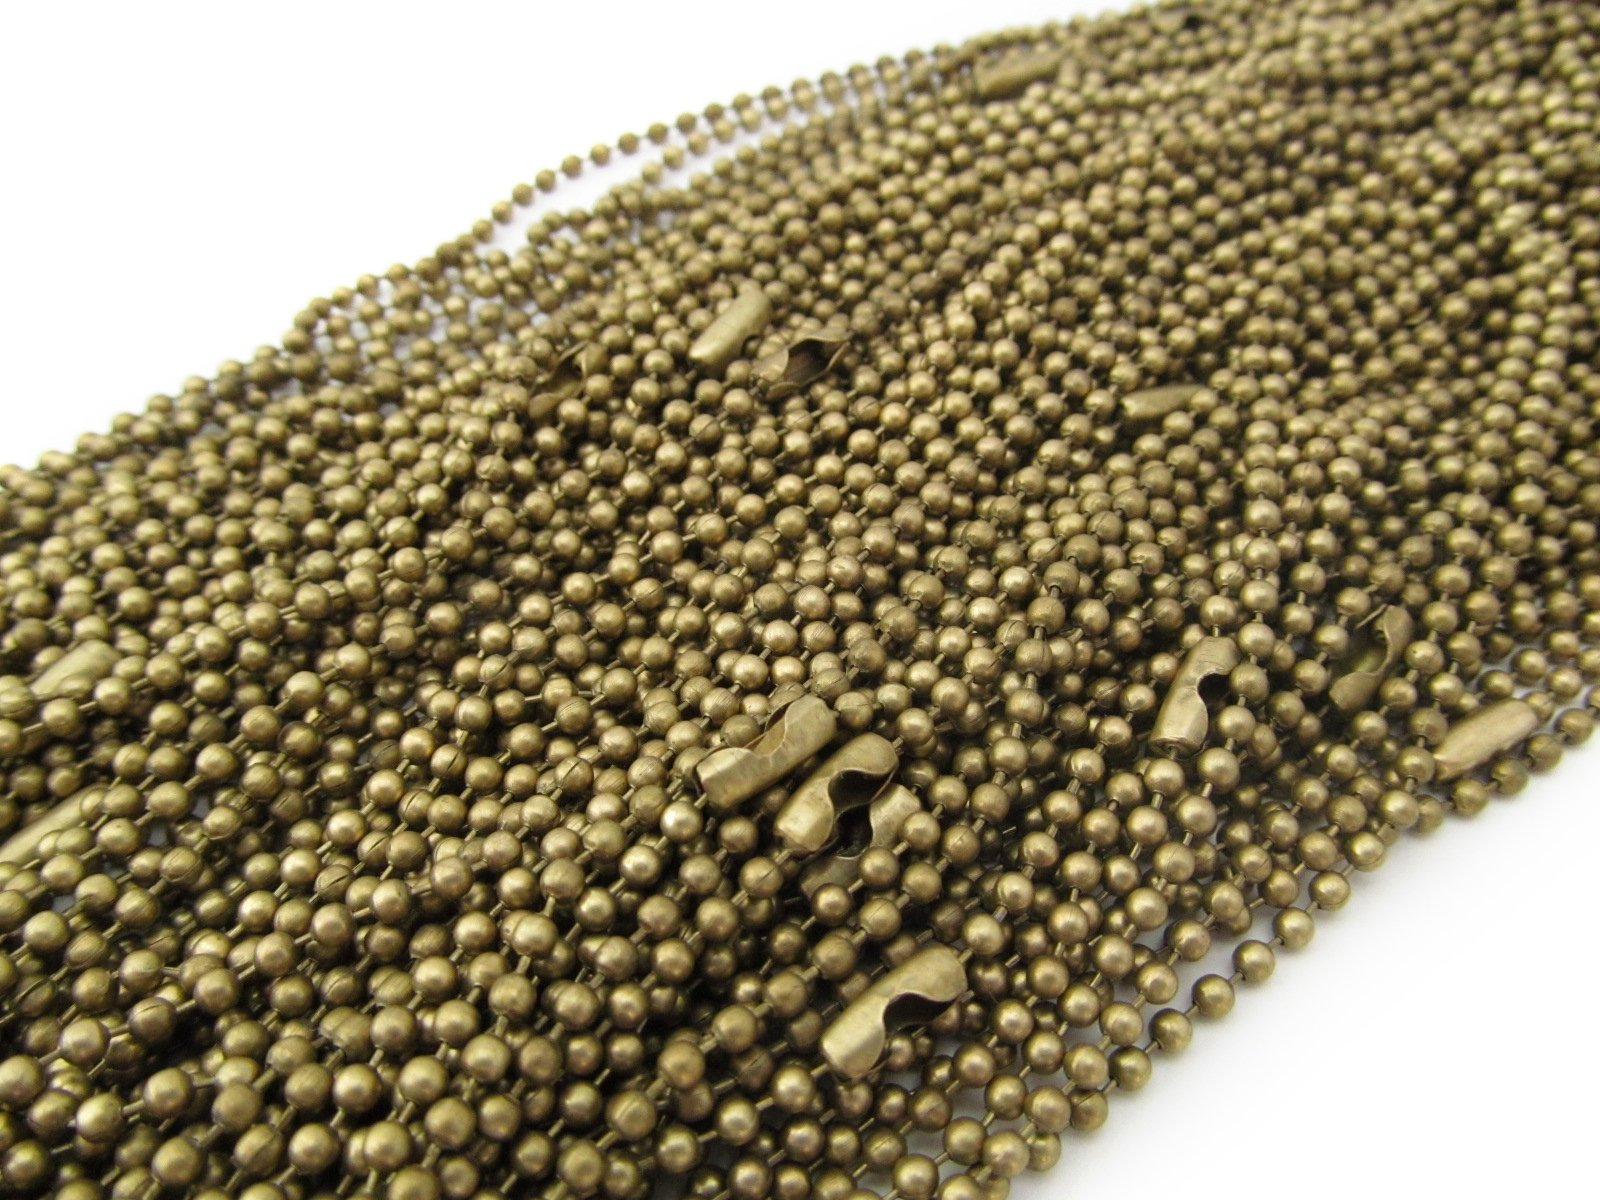 """10 CleverDelights Ball Chain Necklaces - Antique Bronze Color - 24 Inch - Jewelry Findings - 2.4mm Ball - Adjustable Antiqued Necklaces - 24"""" Length"""